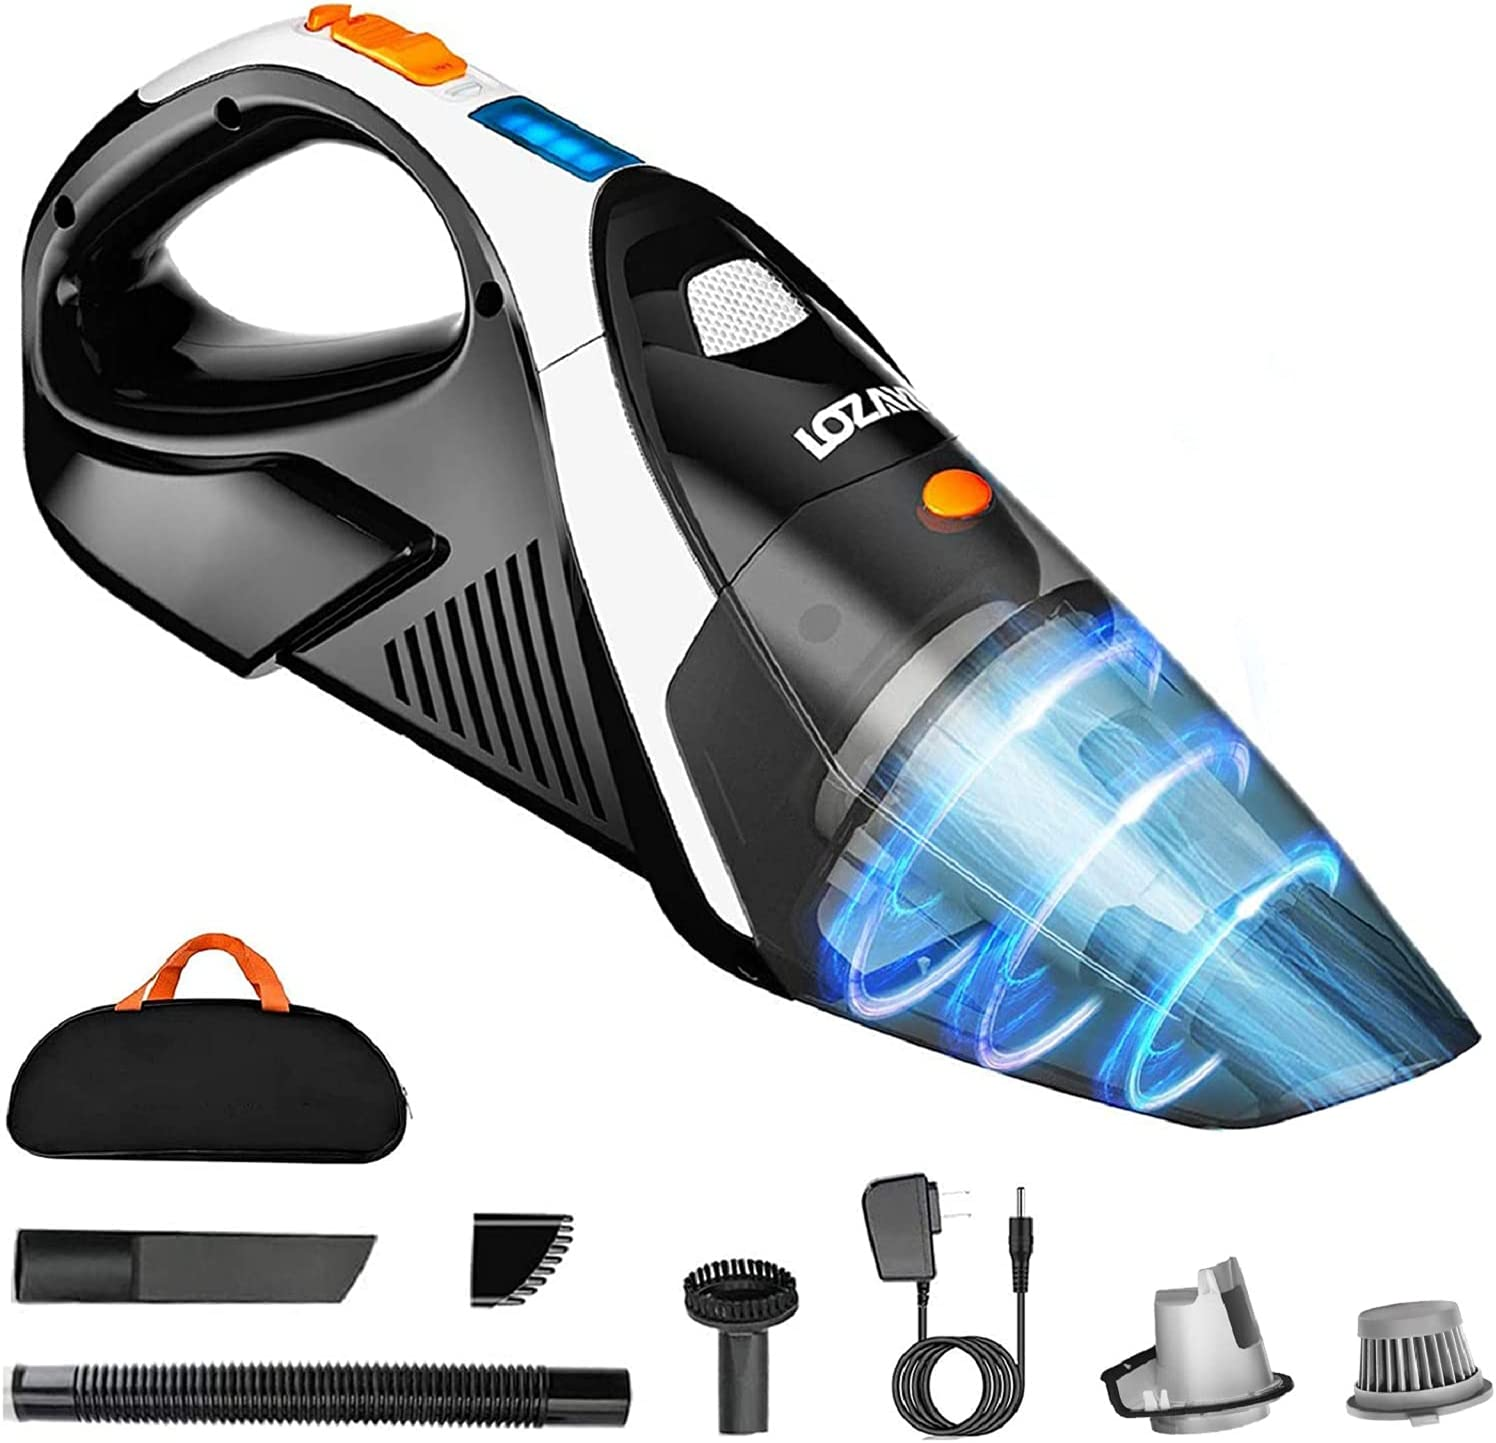 Handheld-Vacuum-Cordless Portable-Cleaner Lightweight Powerful-Wireless Rechargeable:100W 9kpa Cyclonic Suction Home and Car Vac li-ion Battery Quick Charge with LED Light for Pet Hair Brush (Black)